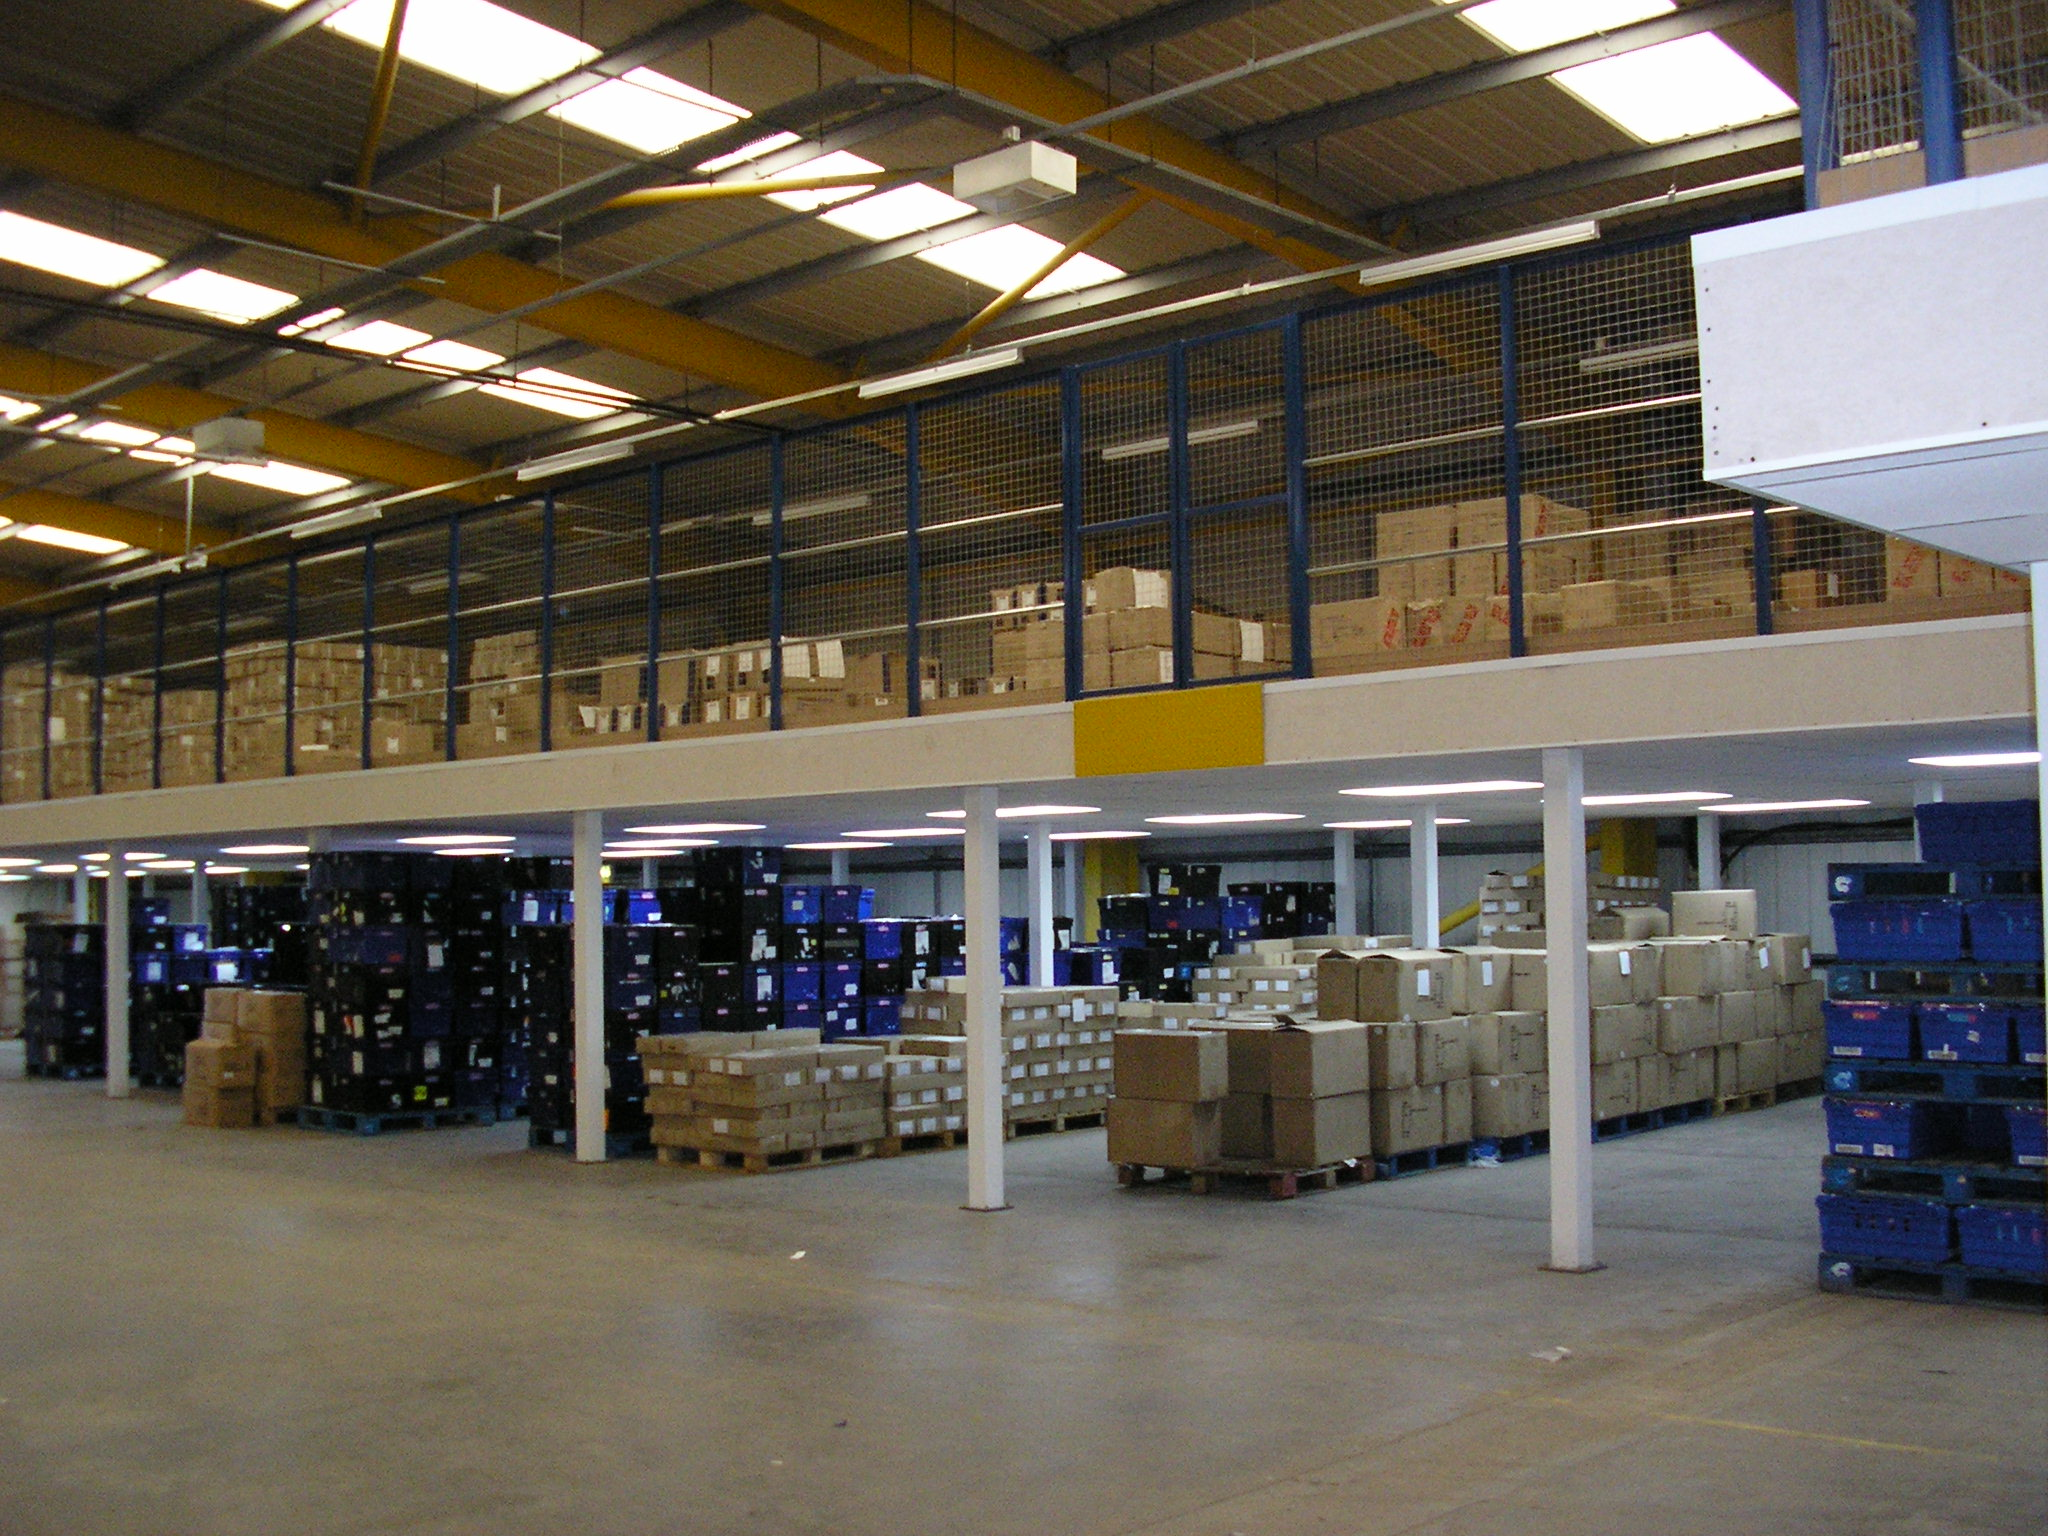 Does your business need a mezzanine floor bradfield storage for How to build a mezzanine floor in your home